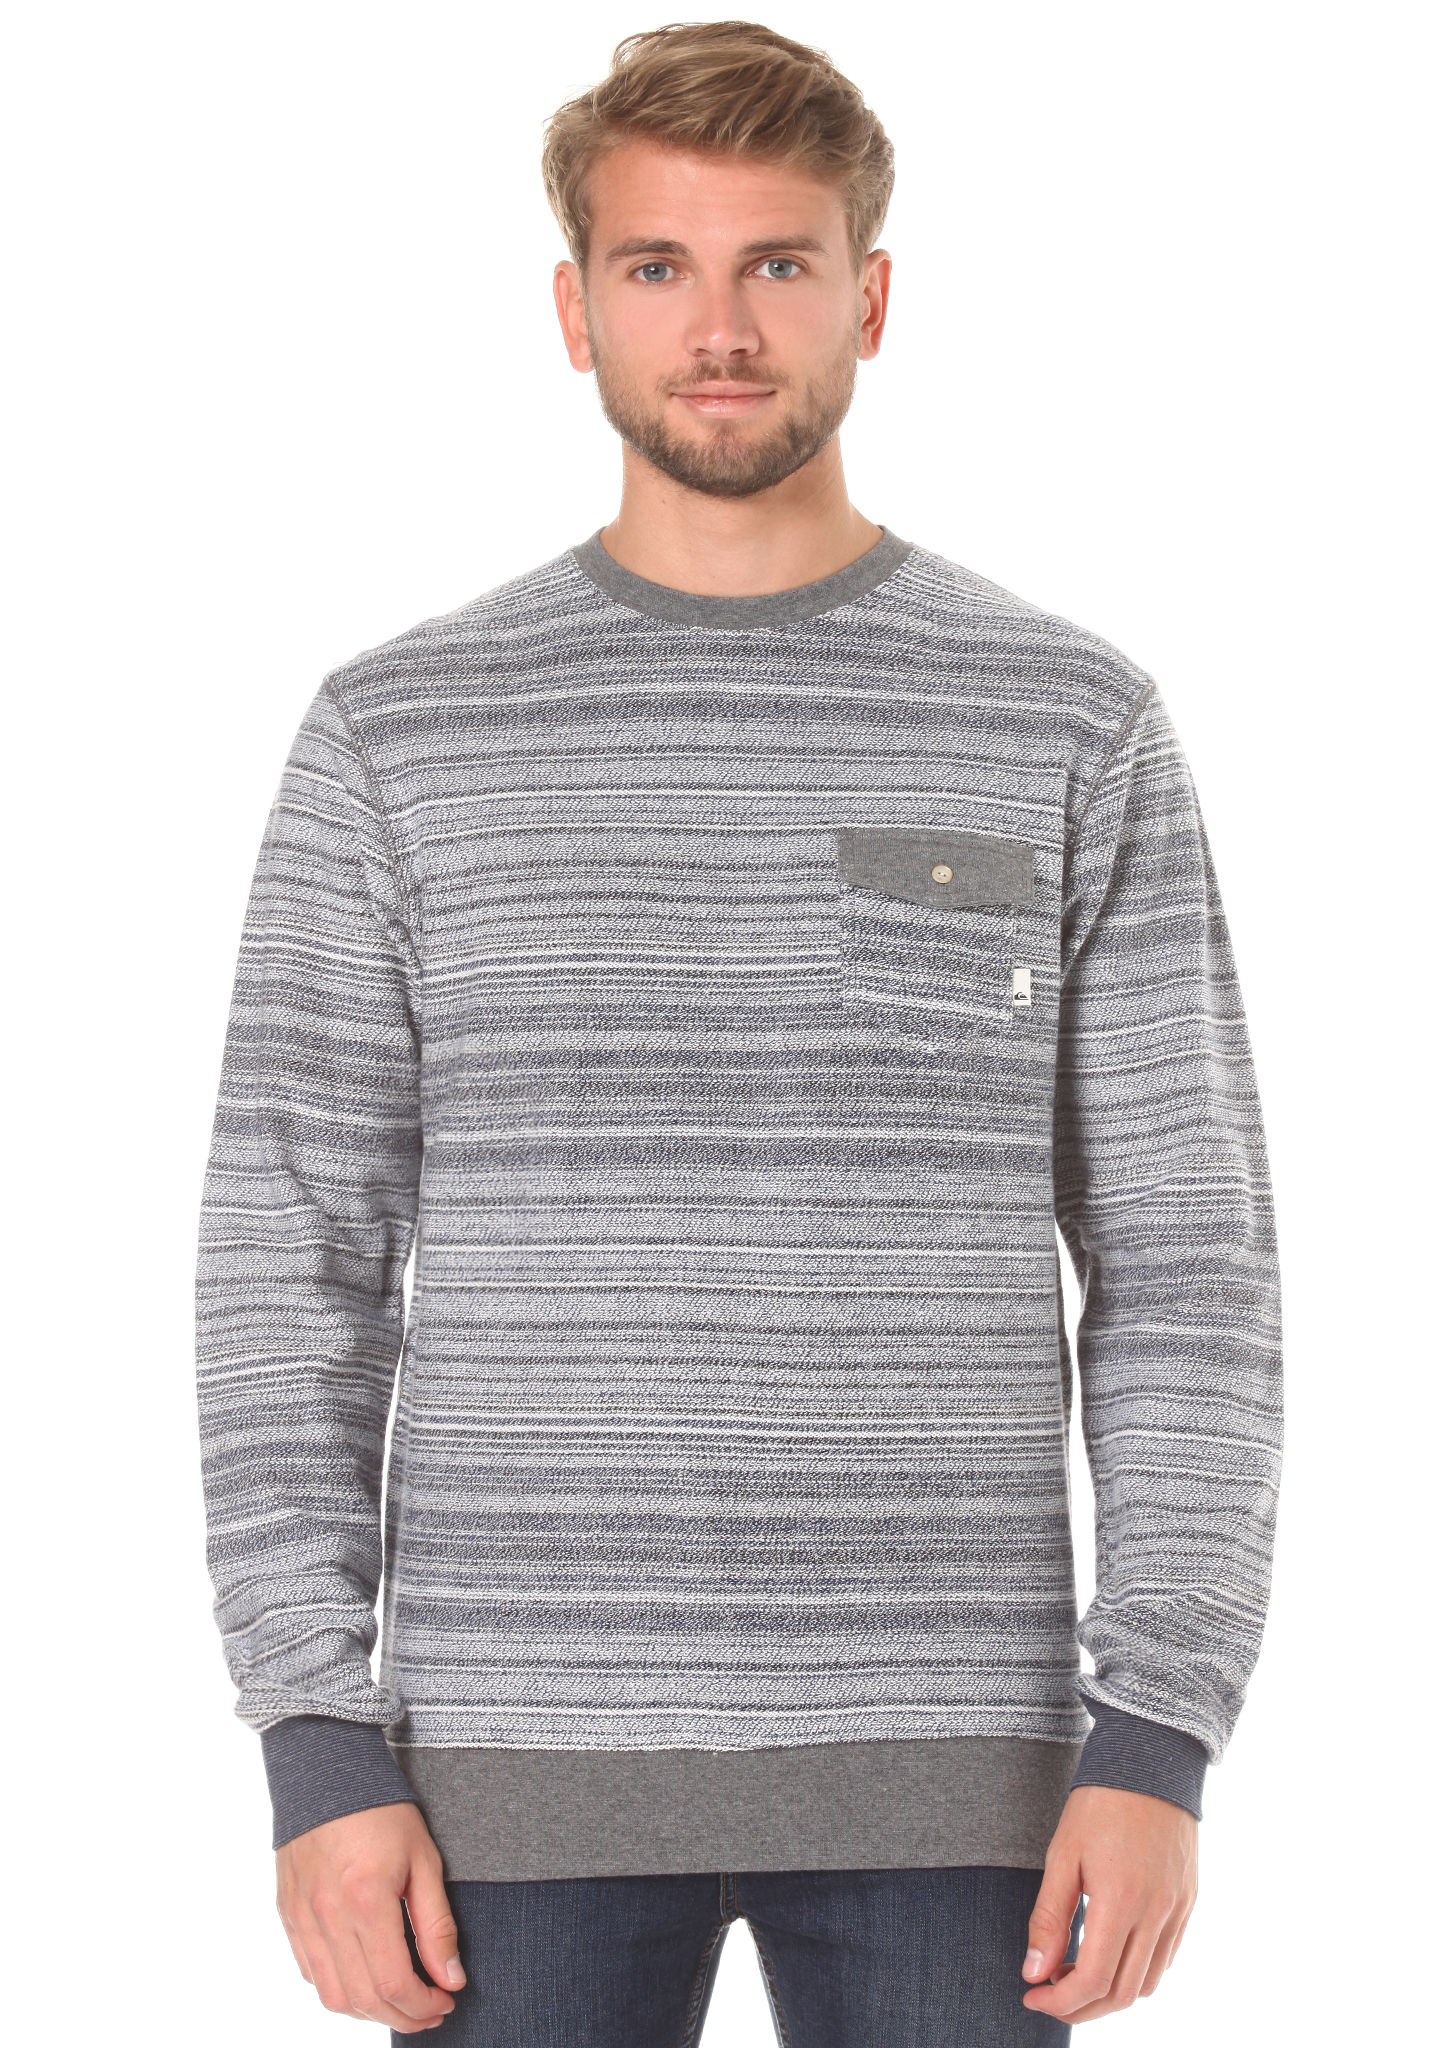 7f35b3b545c Quiksilver Carson Threes - Sweatshirt for Men - Grey - Planet Sports